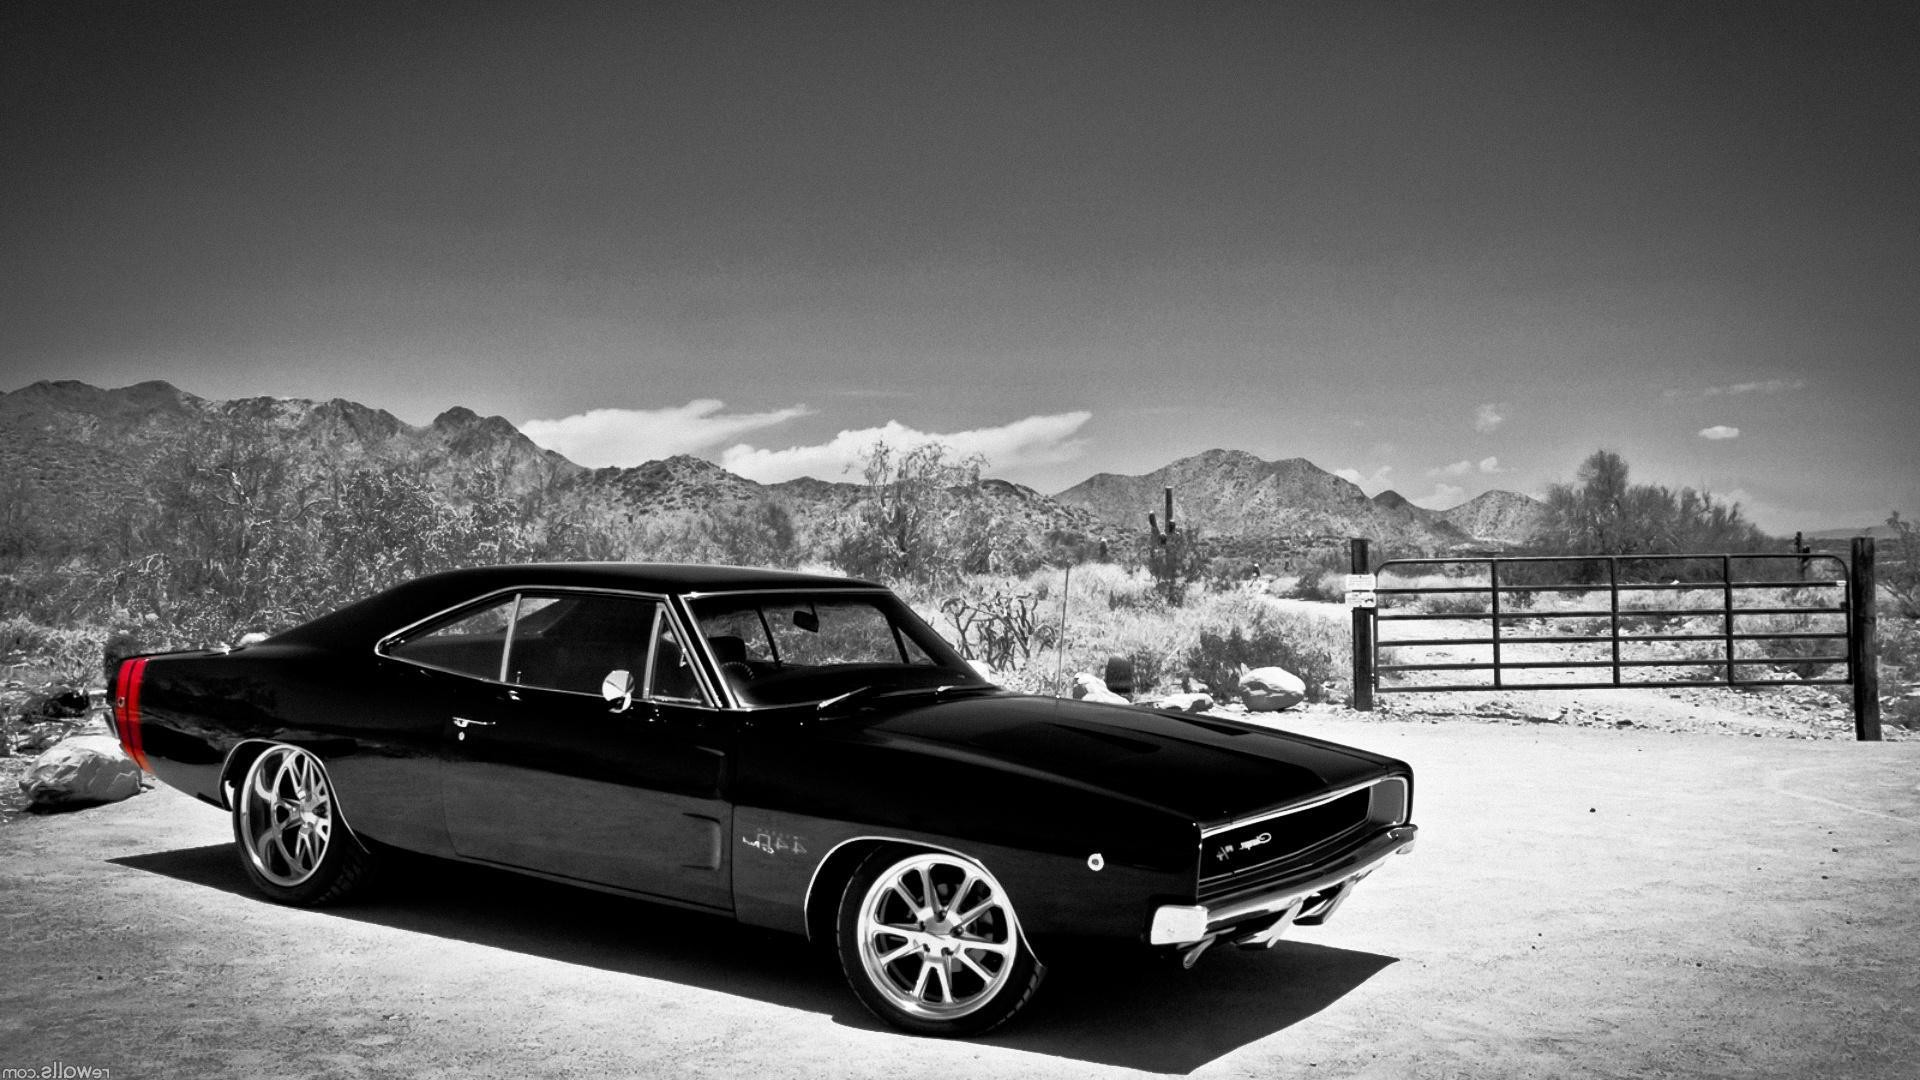 Dodge Charger Desktop Wallpapers Amazing Wallpaperz | HD Wallpapers |  Pinterest | Dodge charger, Dodge and Wallpaper